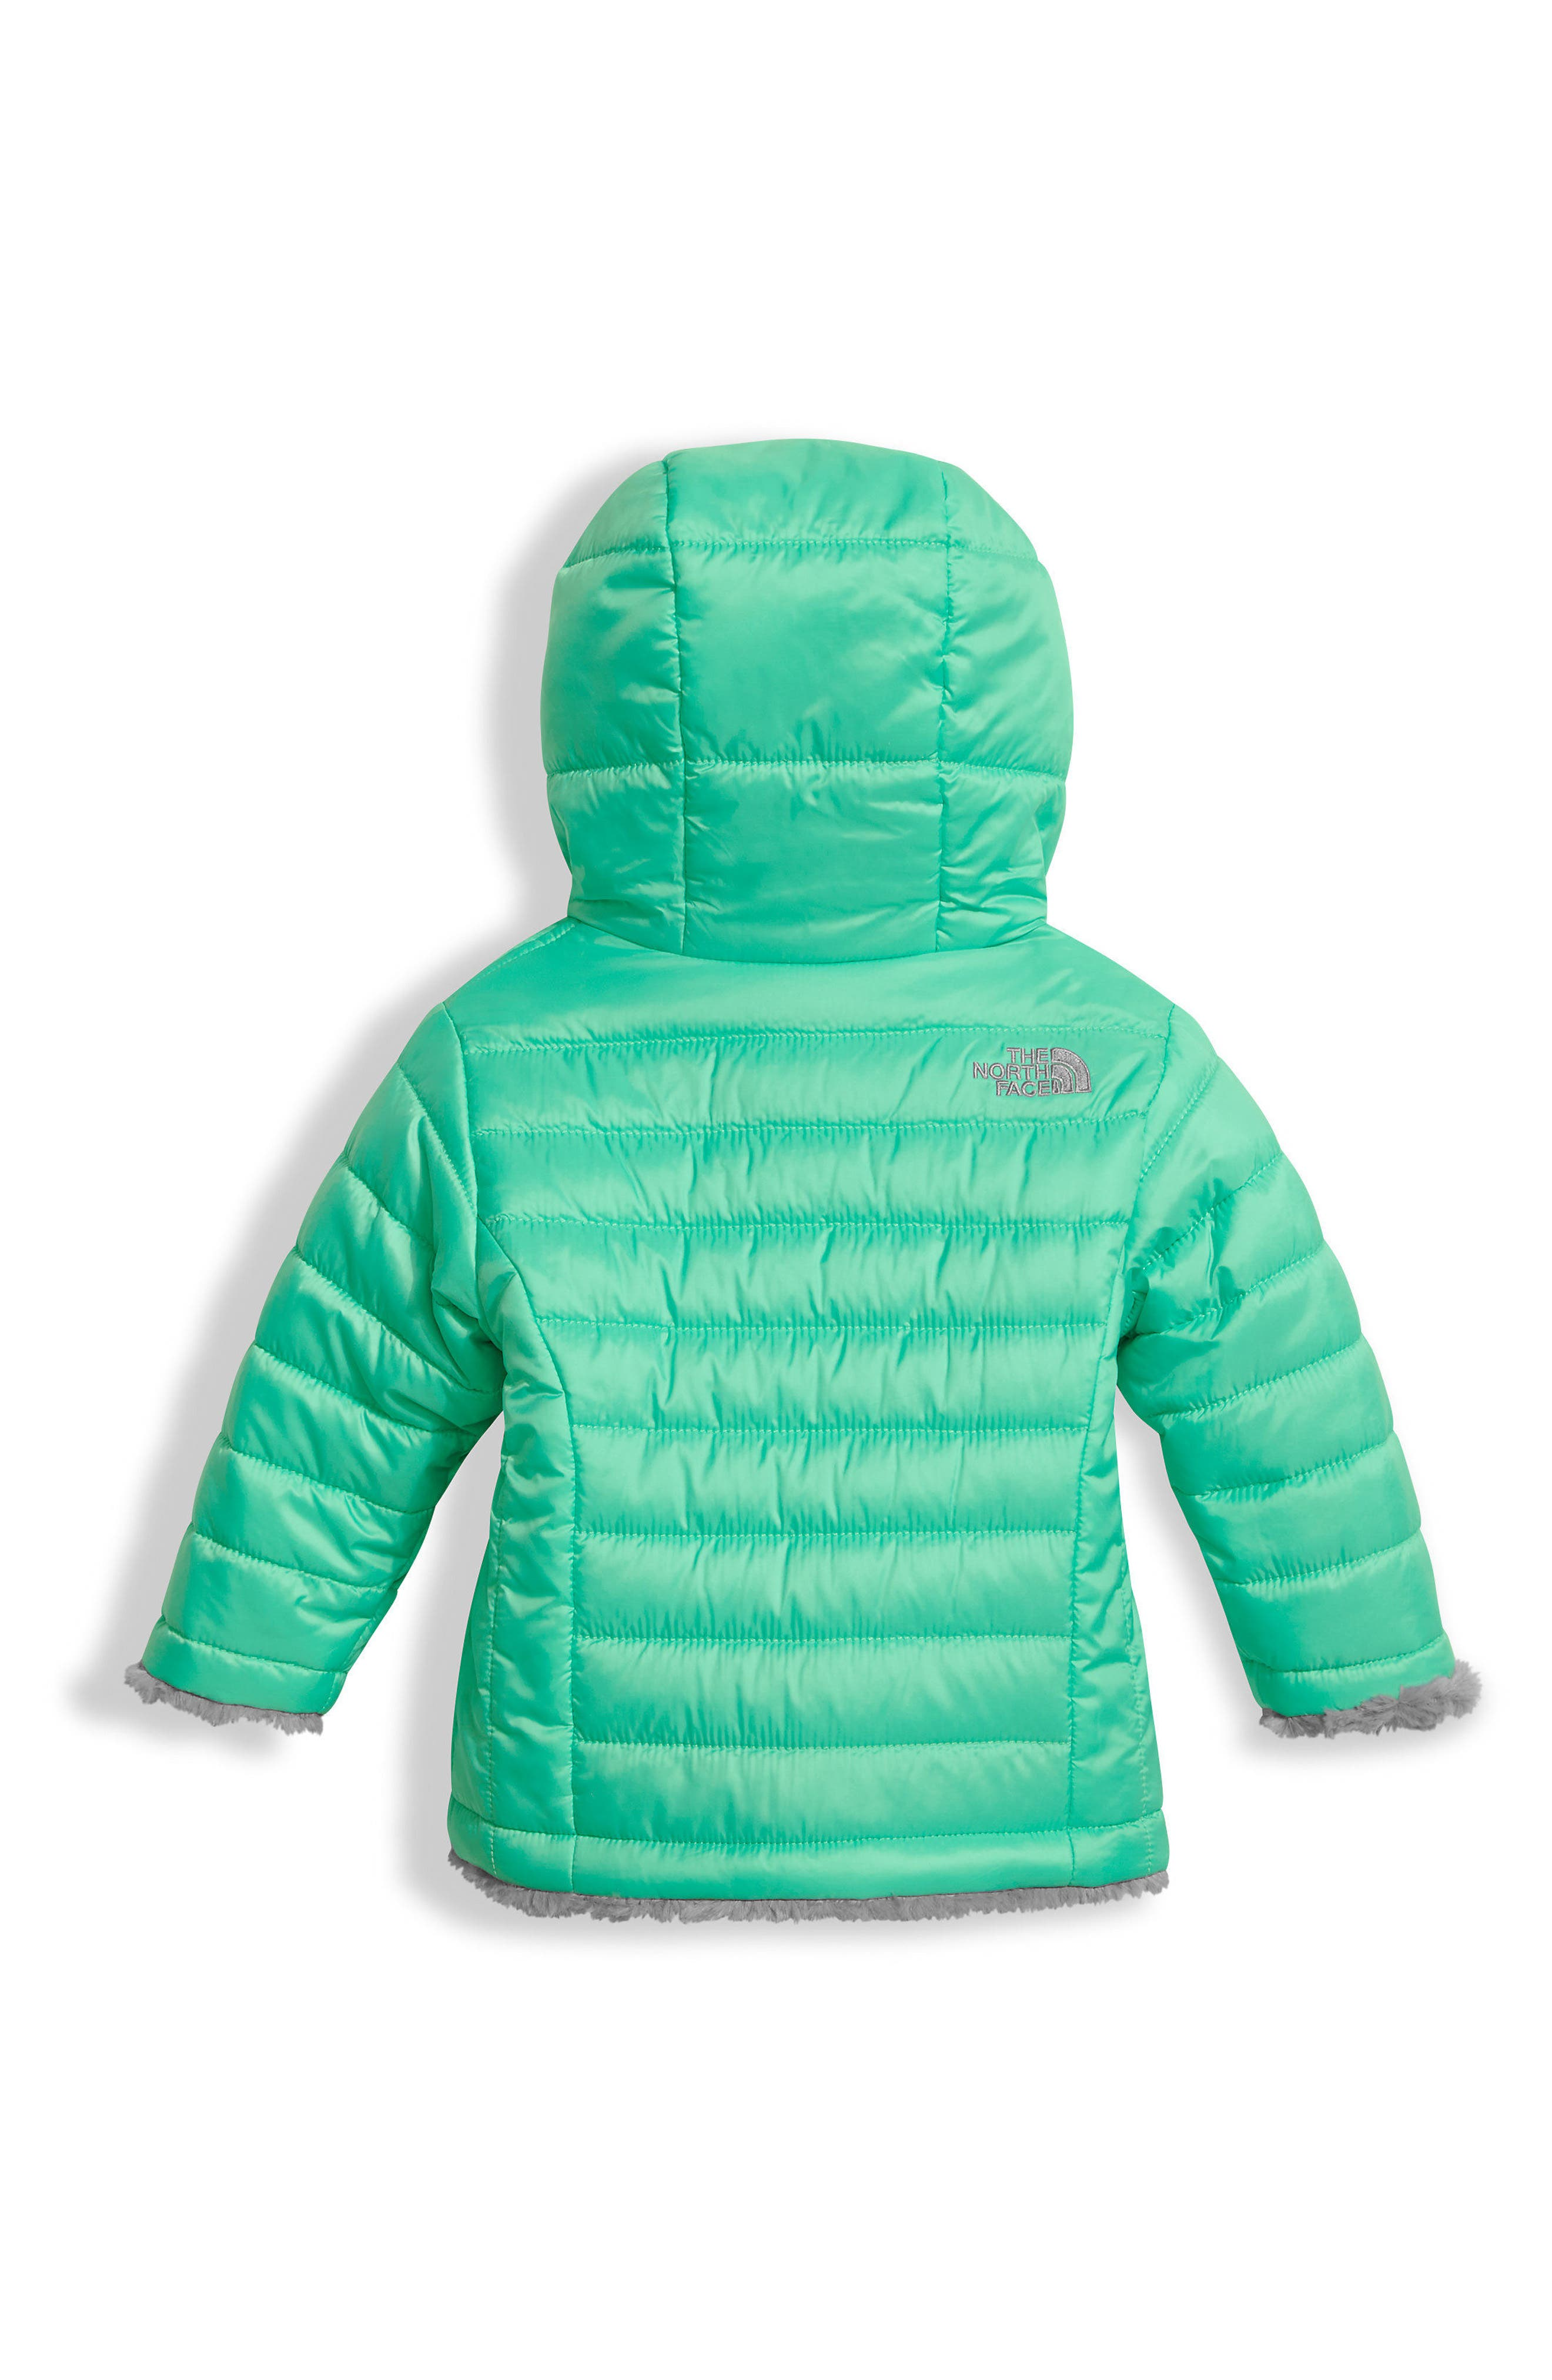 'Mossbud' Reversible Water Repellent Jacket,                             Alternate thumbnail 3, color,                             310